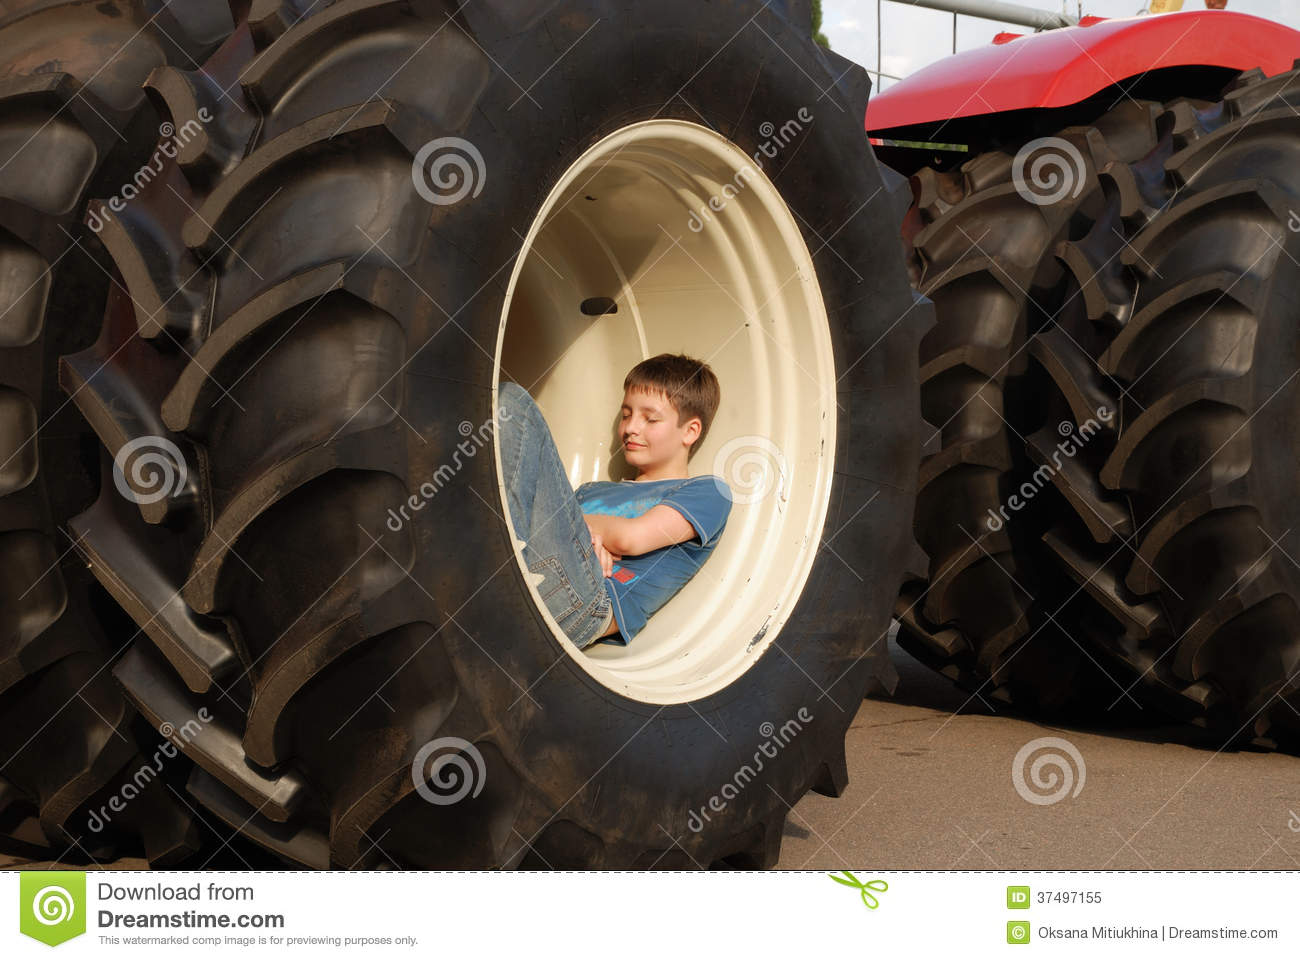 Large Tractor Wheels : Large wheels of tractor with a boy inside stock image